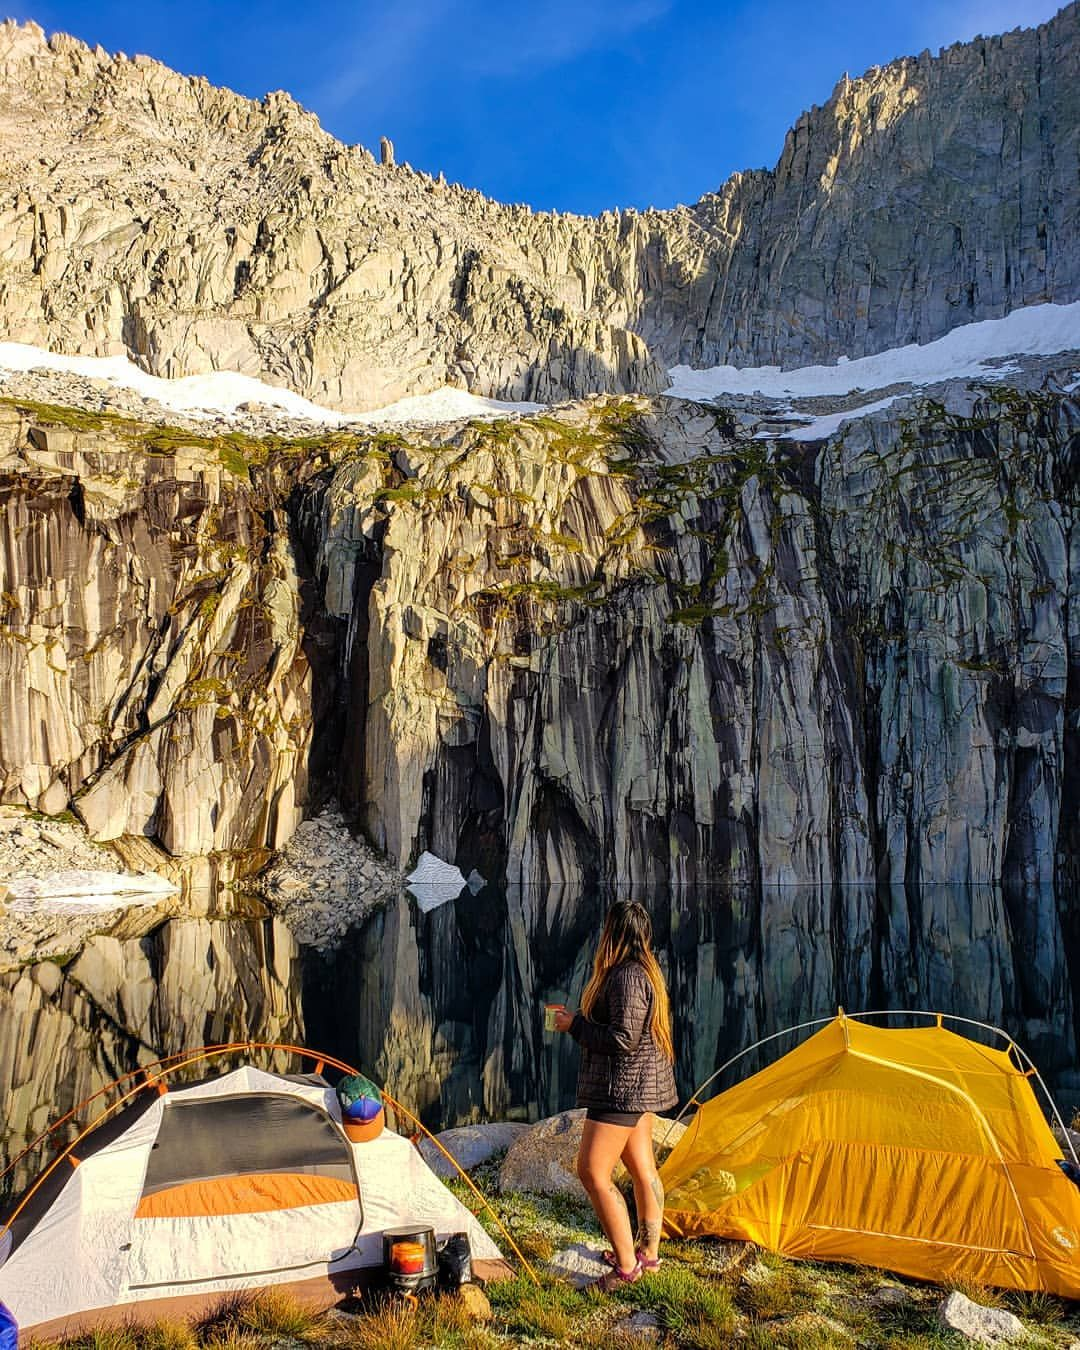 Tennyson Miki Edwards V Instagram Hst Campsite Day 3 Precipice Lake It Was Friday The 13th But We Felt P Places Around The World Around The Worlds Lake